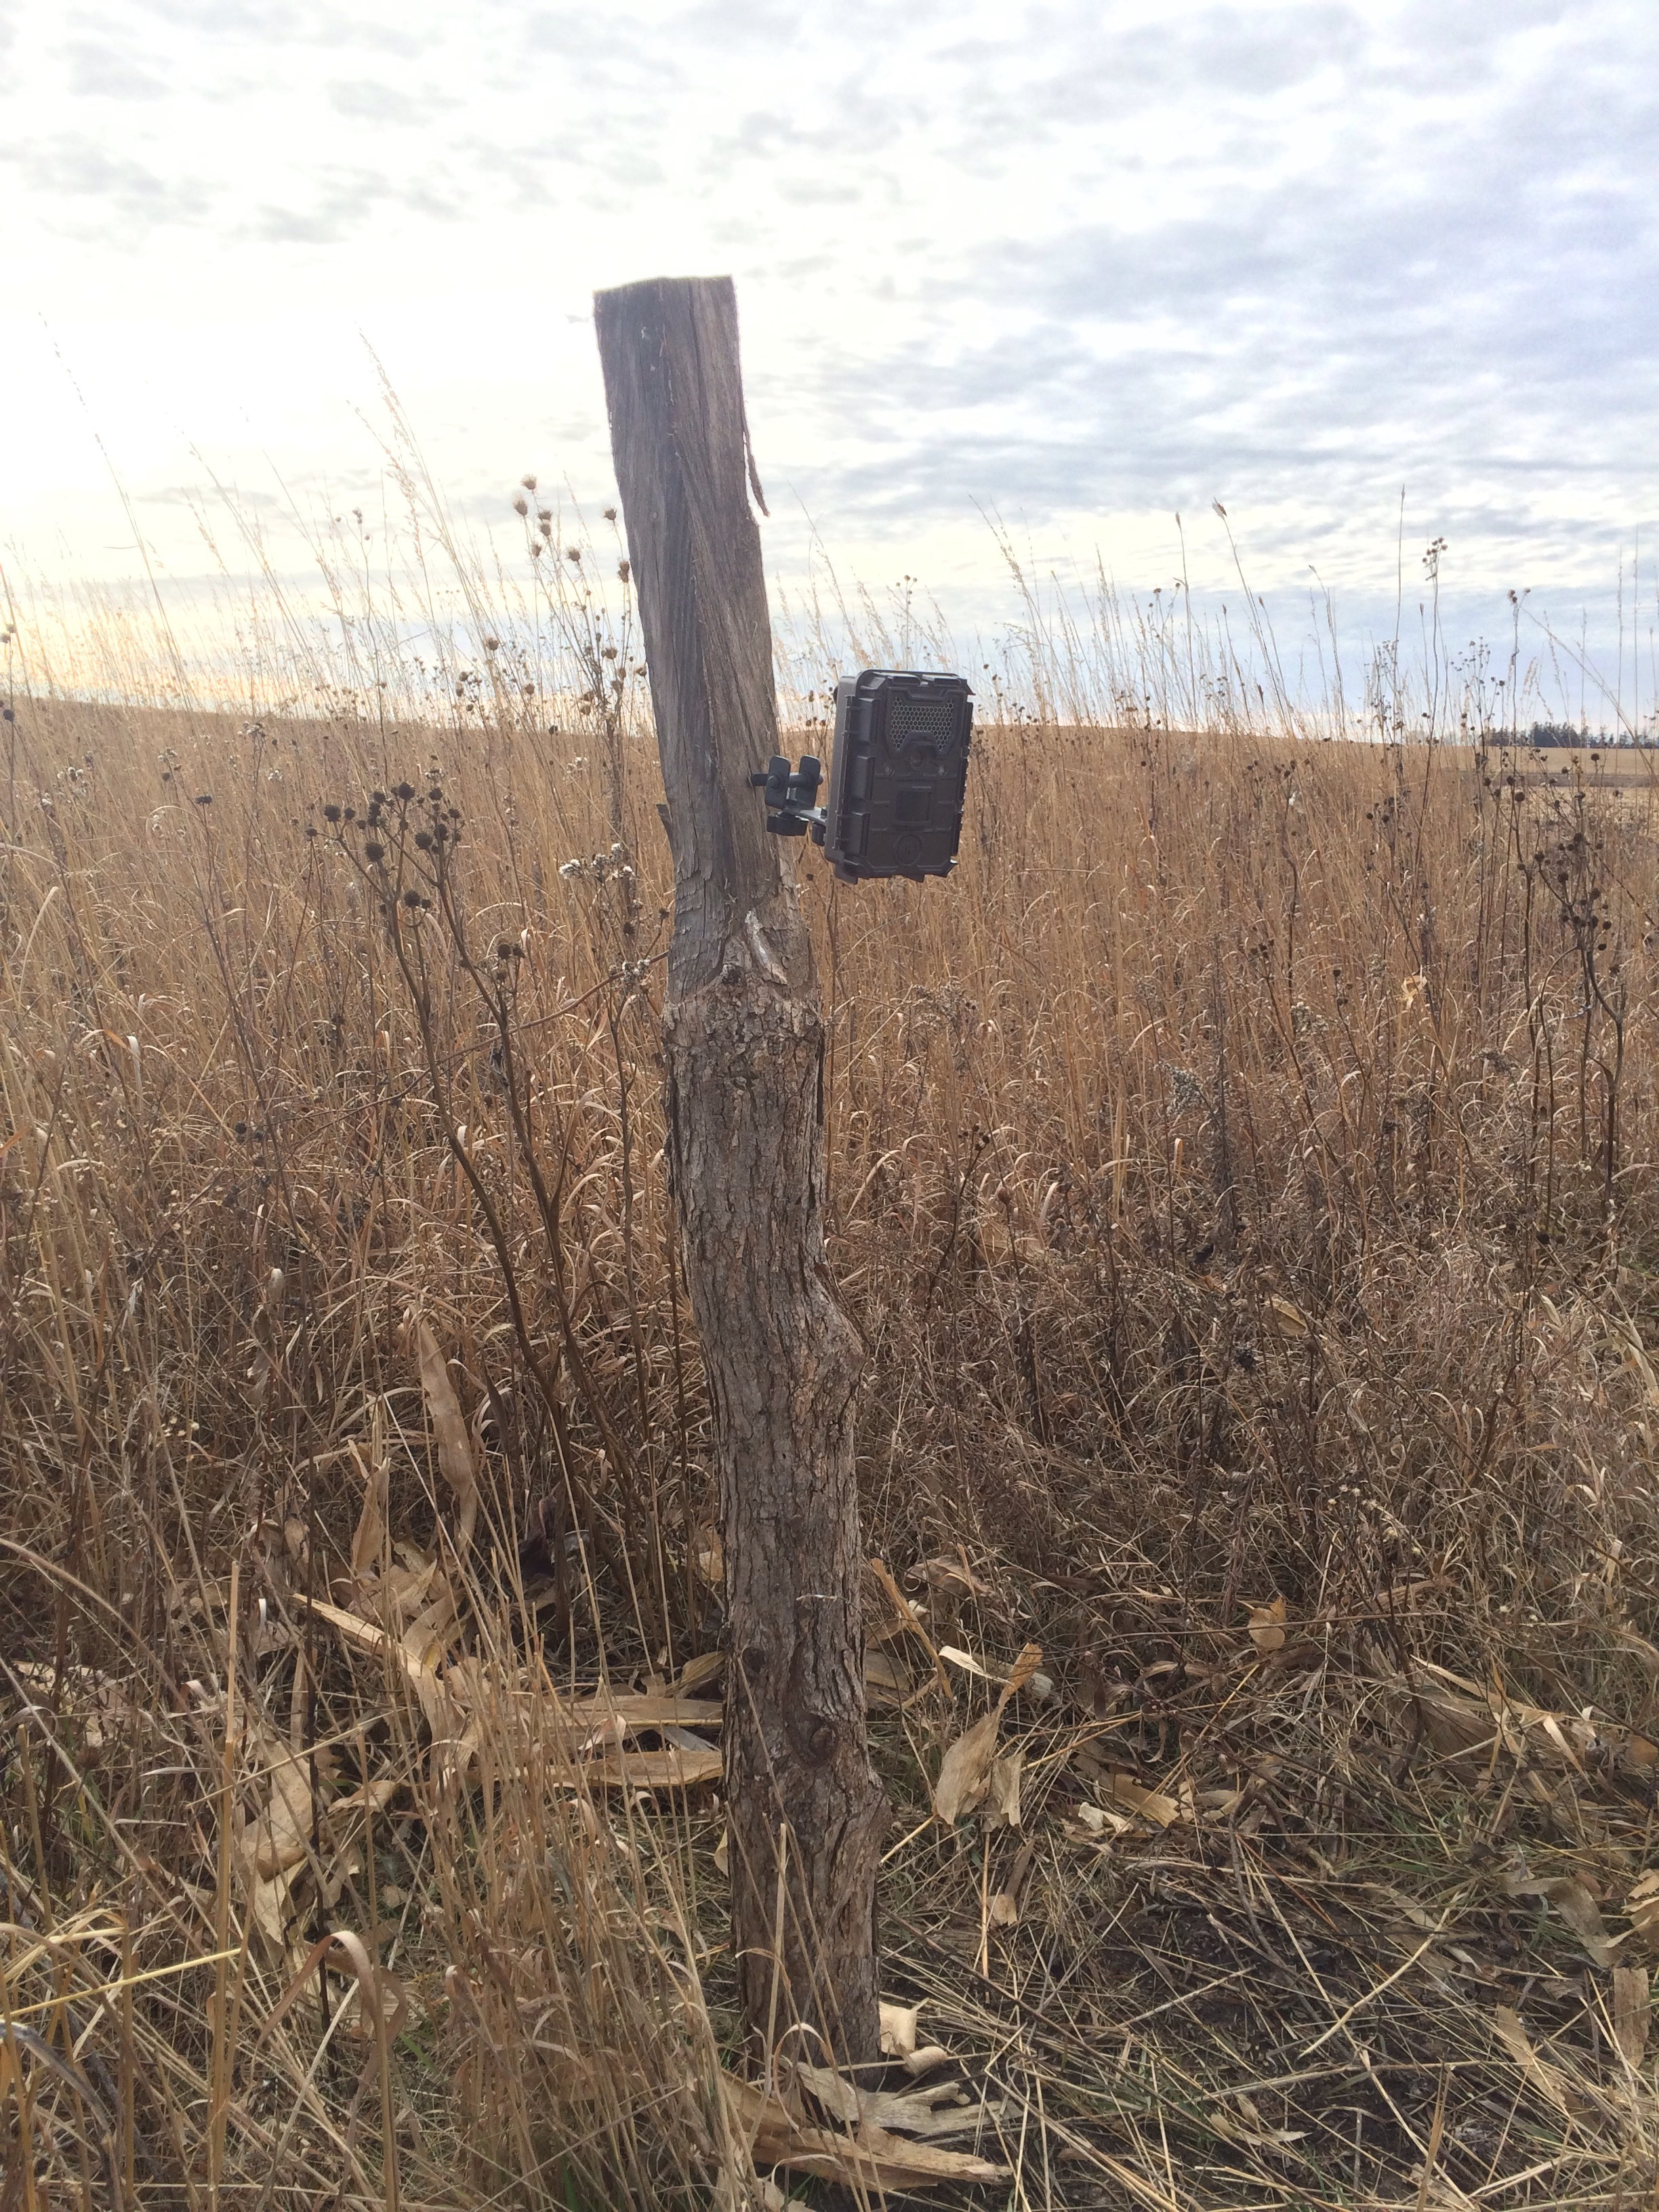 Goose Pond Sanctuary's new camera trap, part of the Snapshot Wisconsin program. Photo by Maddie Dumas